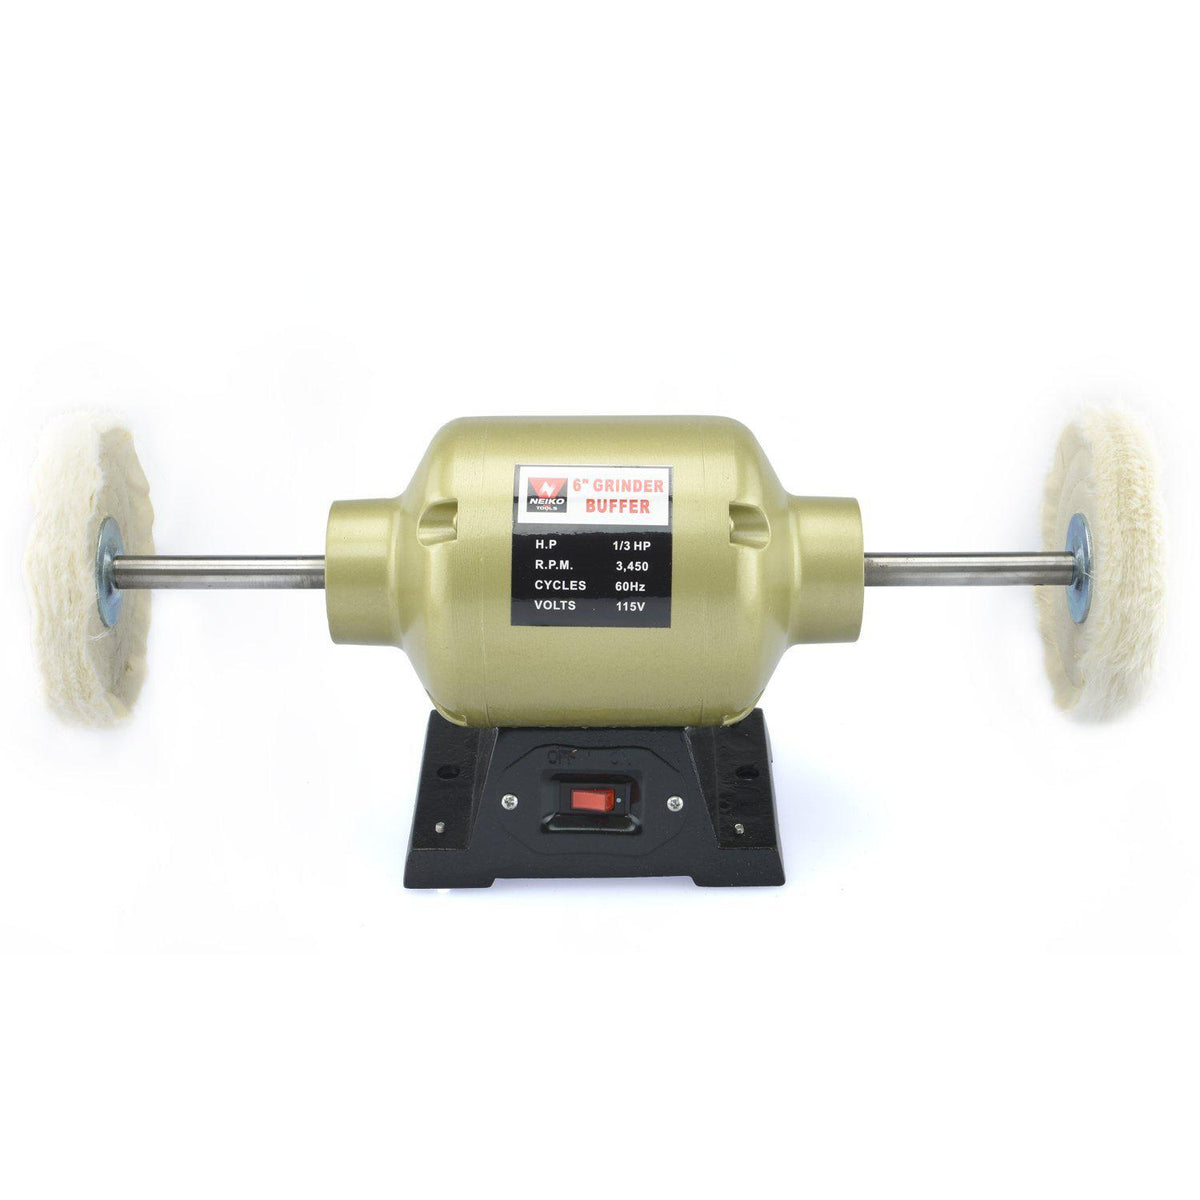 6 Quot Bench Grinder Buffer With 2 Buffing Wheels California